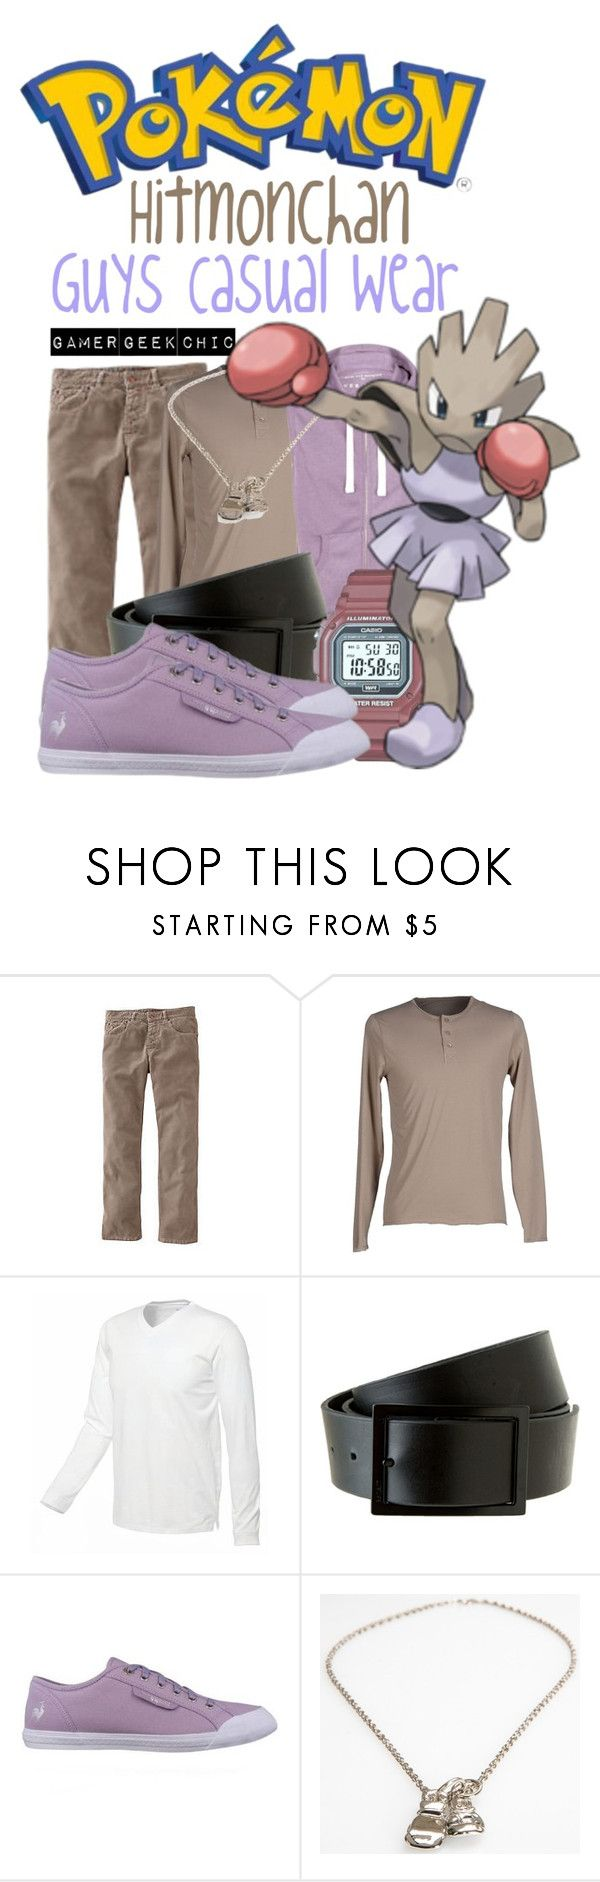 """Pokémon - Hitmonchan"" by gamer-geek-chic ❤ liked on Polyvore featuring Boden, Alpha Studio and Le Coq Sportif"